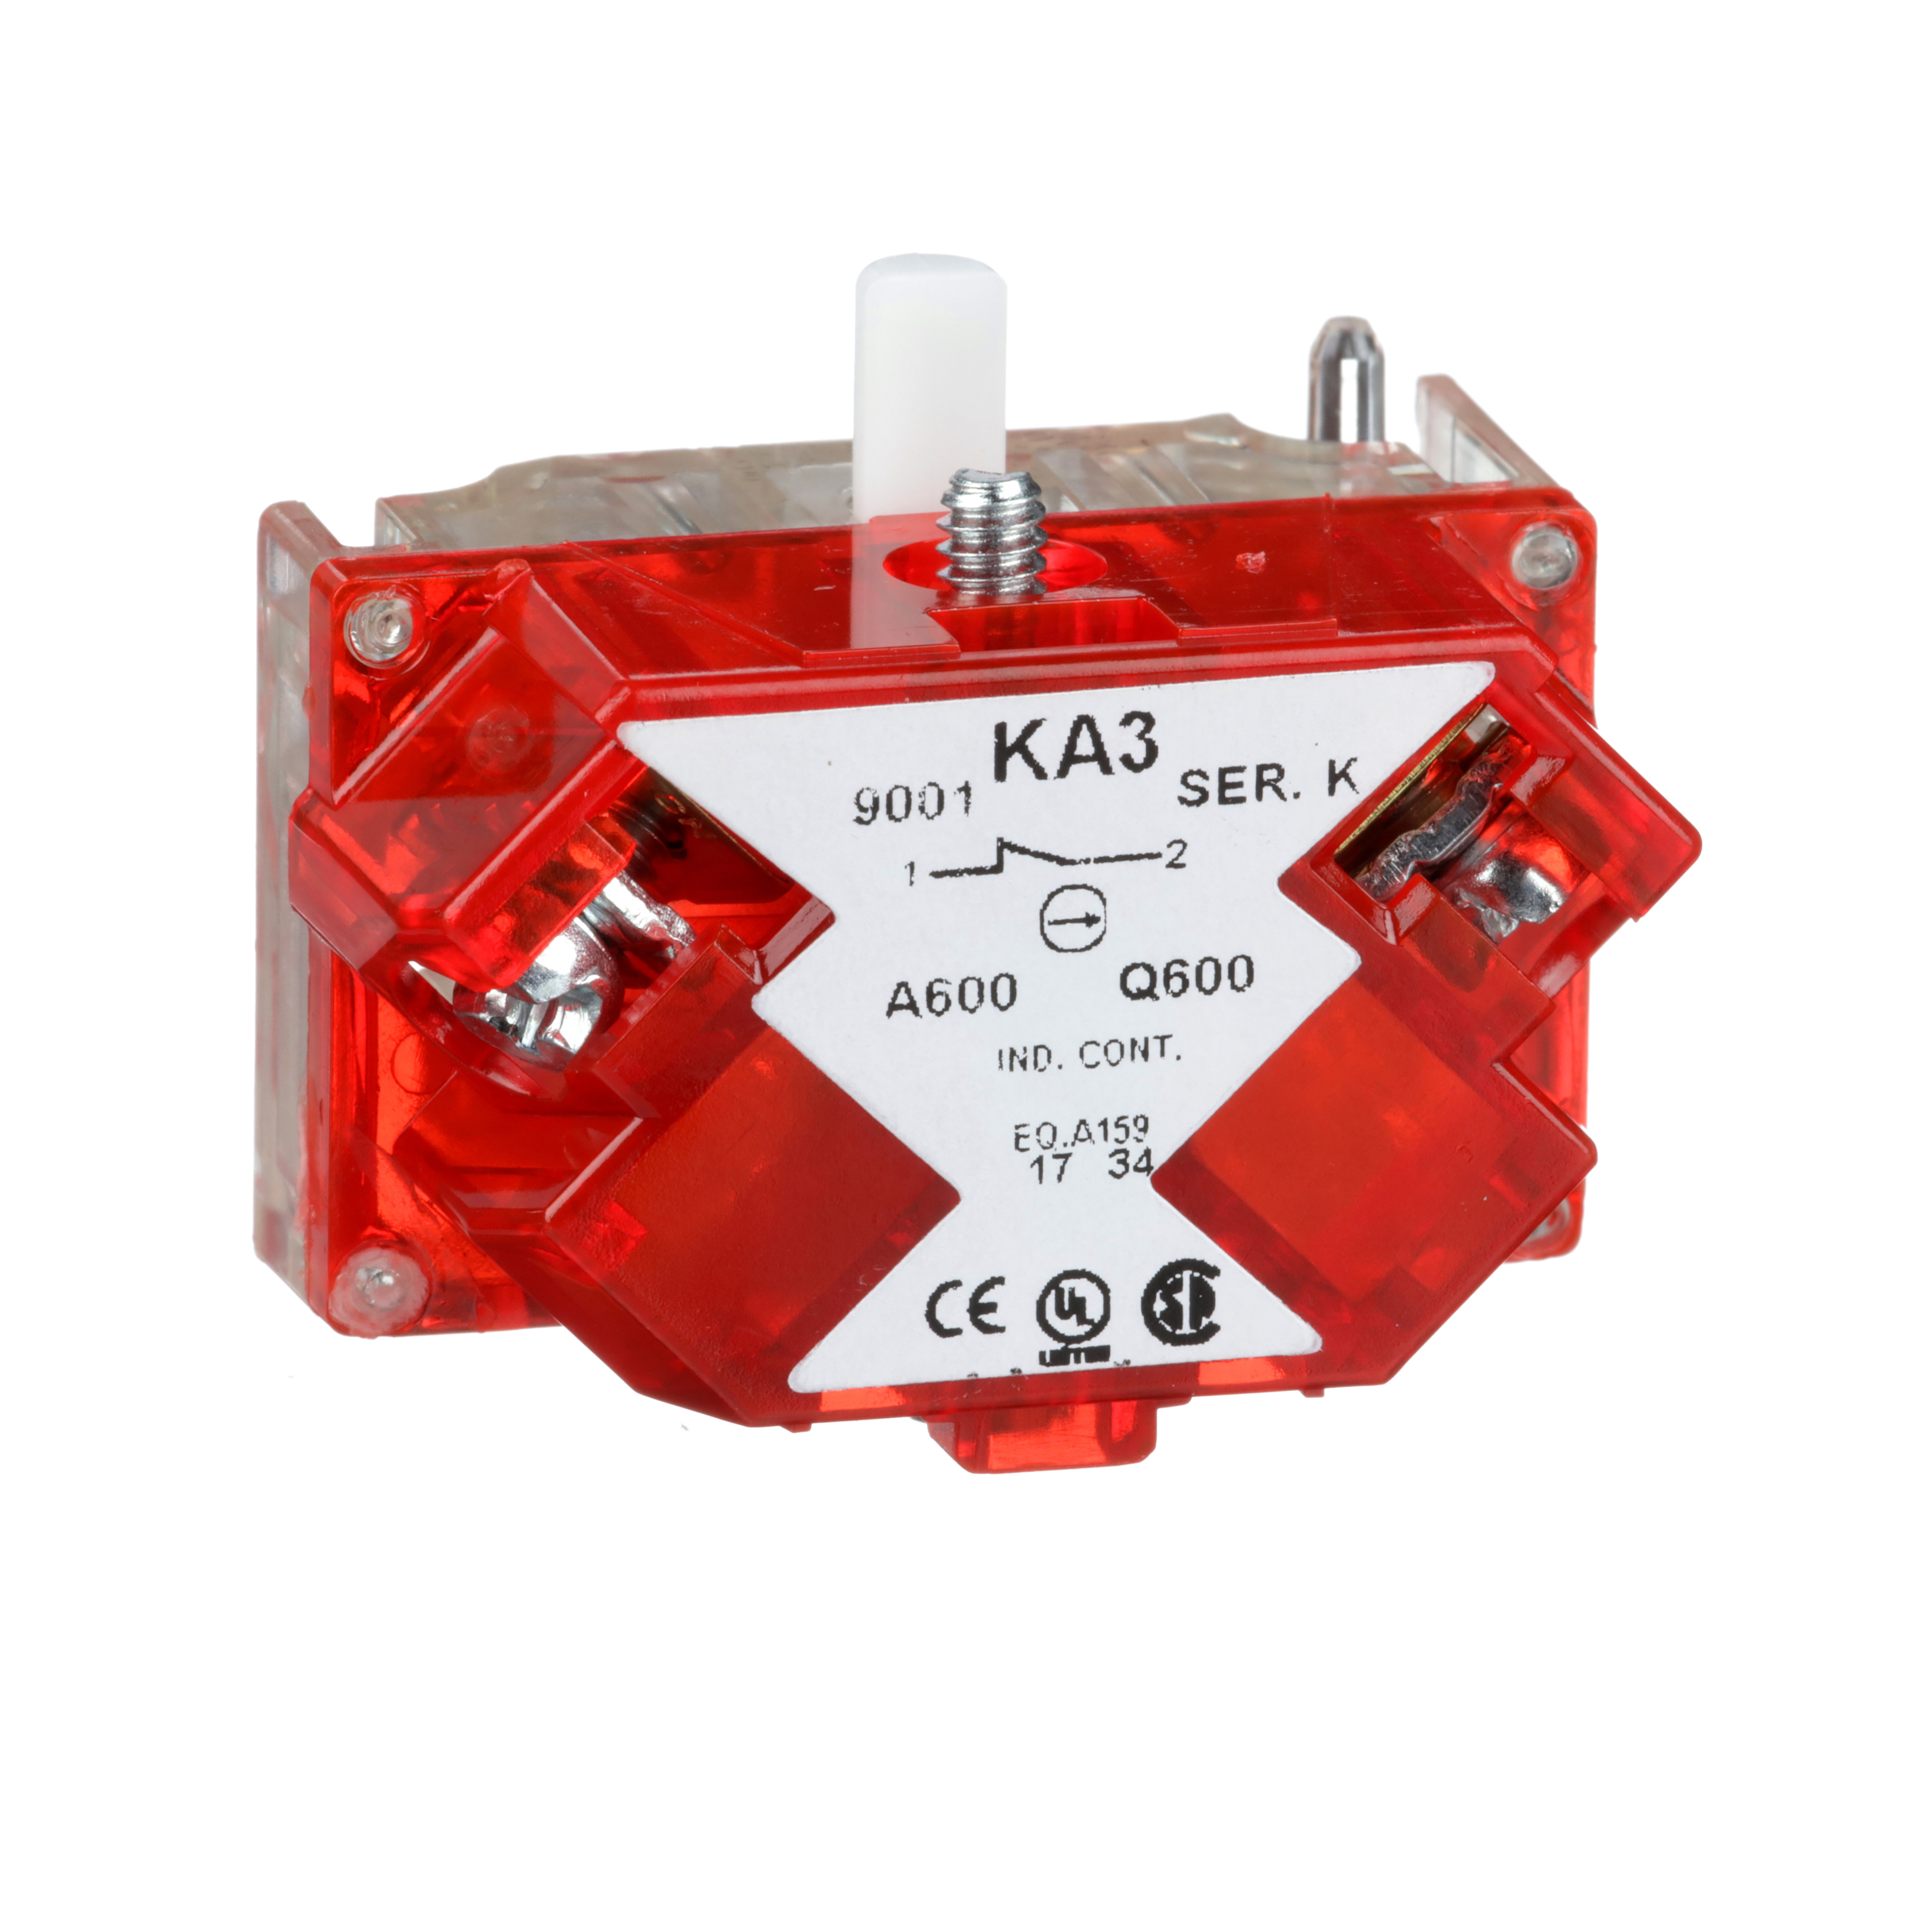 SQUARE D 30mm Push Button, Types K, SK or KX, contact block, 1 NC